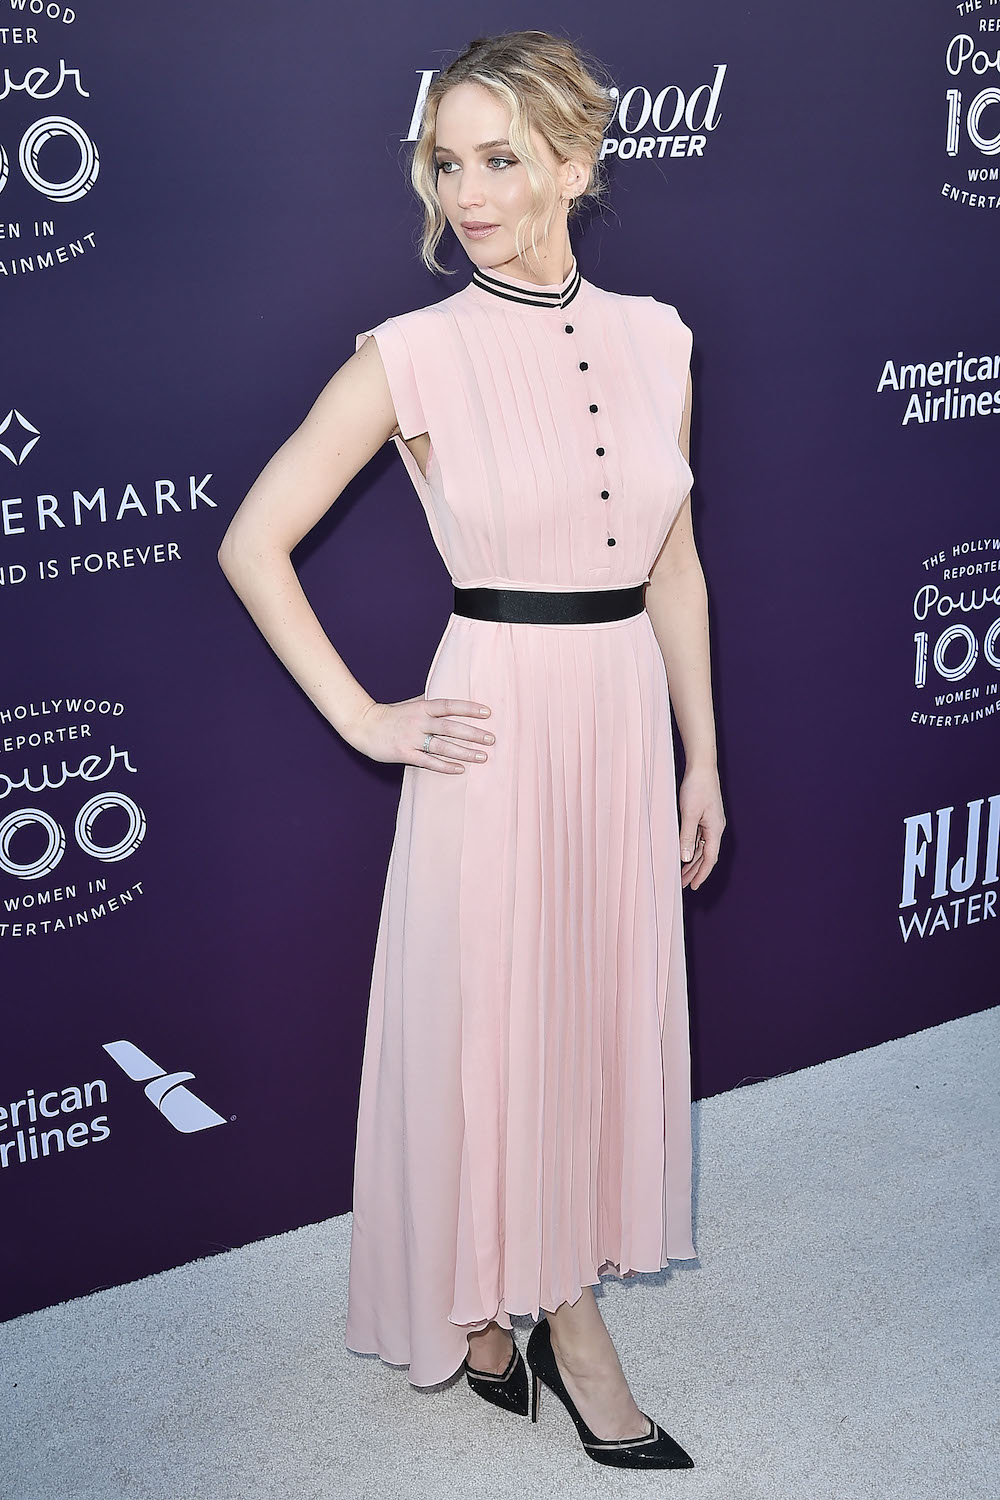 Jennifer Lawrence Wore A Millennial Pink Dress To Amy